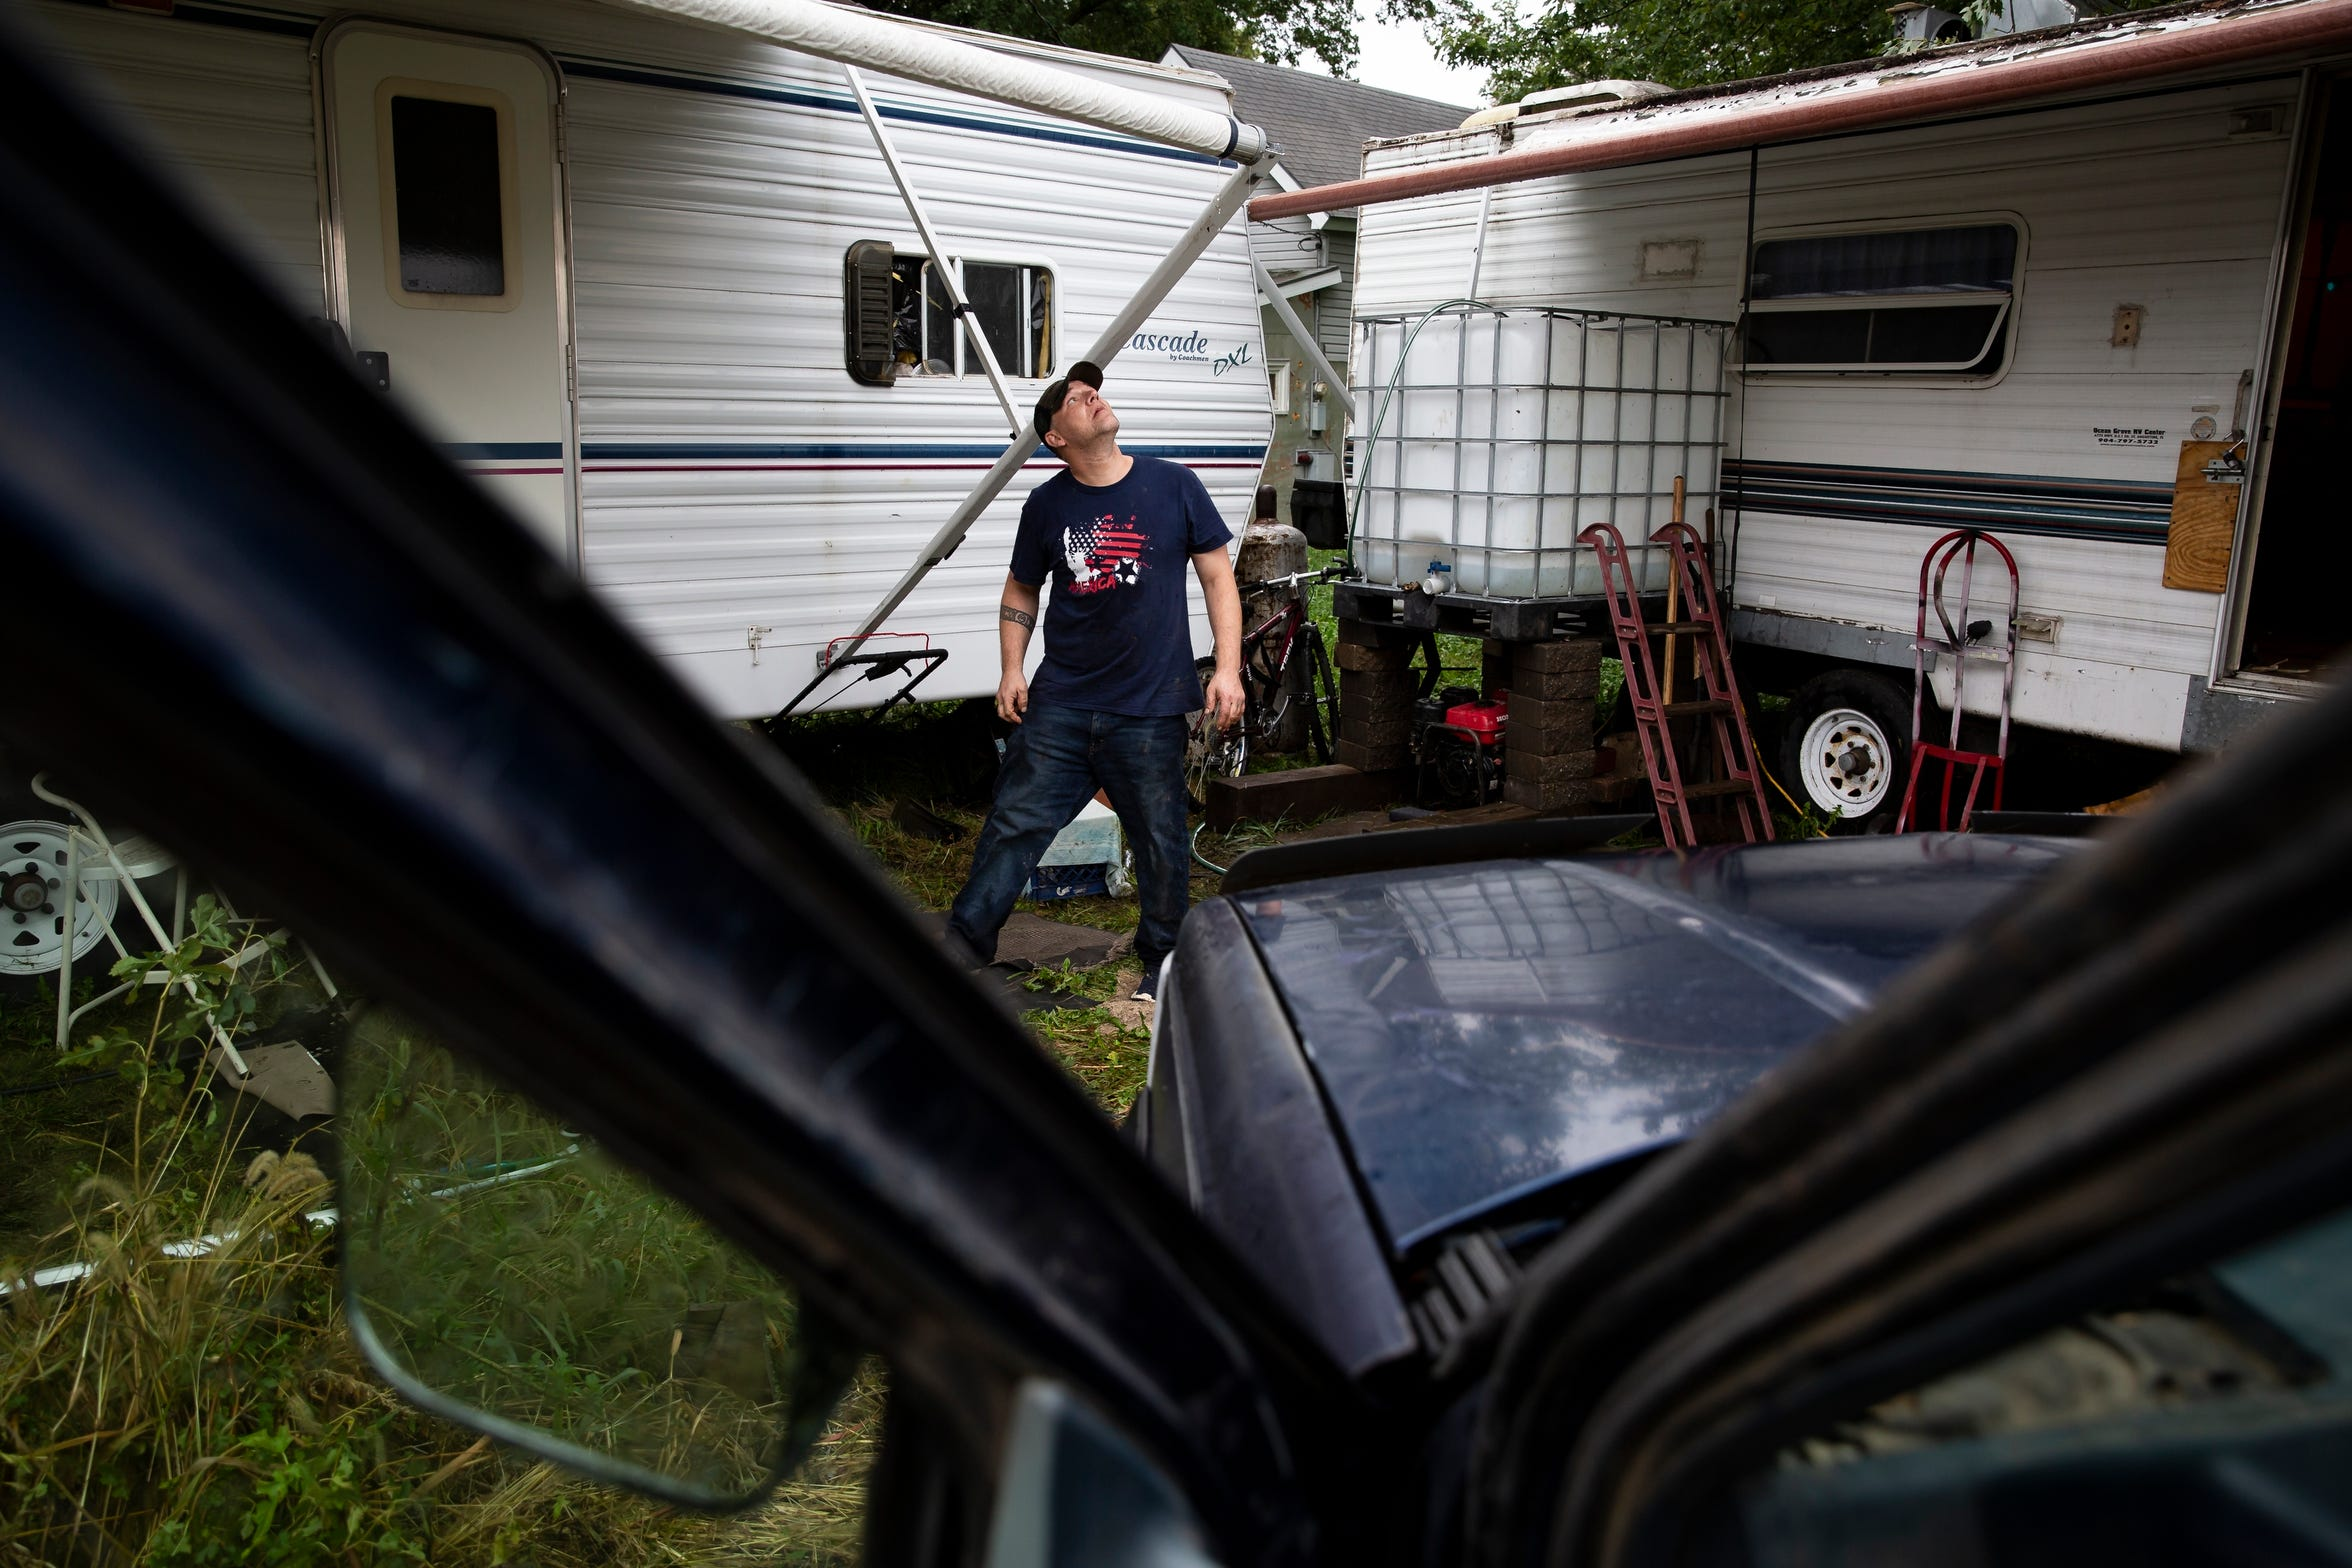 Matt Tyson, 39 of Pacific Junction, looks at the sky as rain begins to fall outside his trailer in Pacific Junction. Tyson and relatives lost their homes in the spring floods. He plans to spend the winter in his trailer as he helps them rebuild.